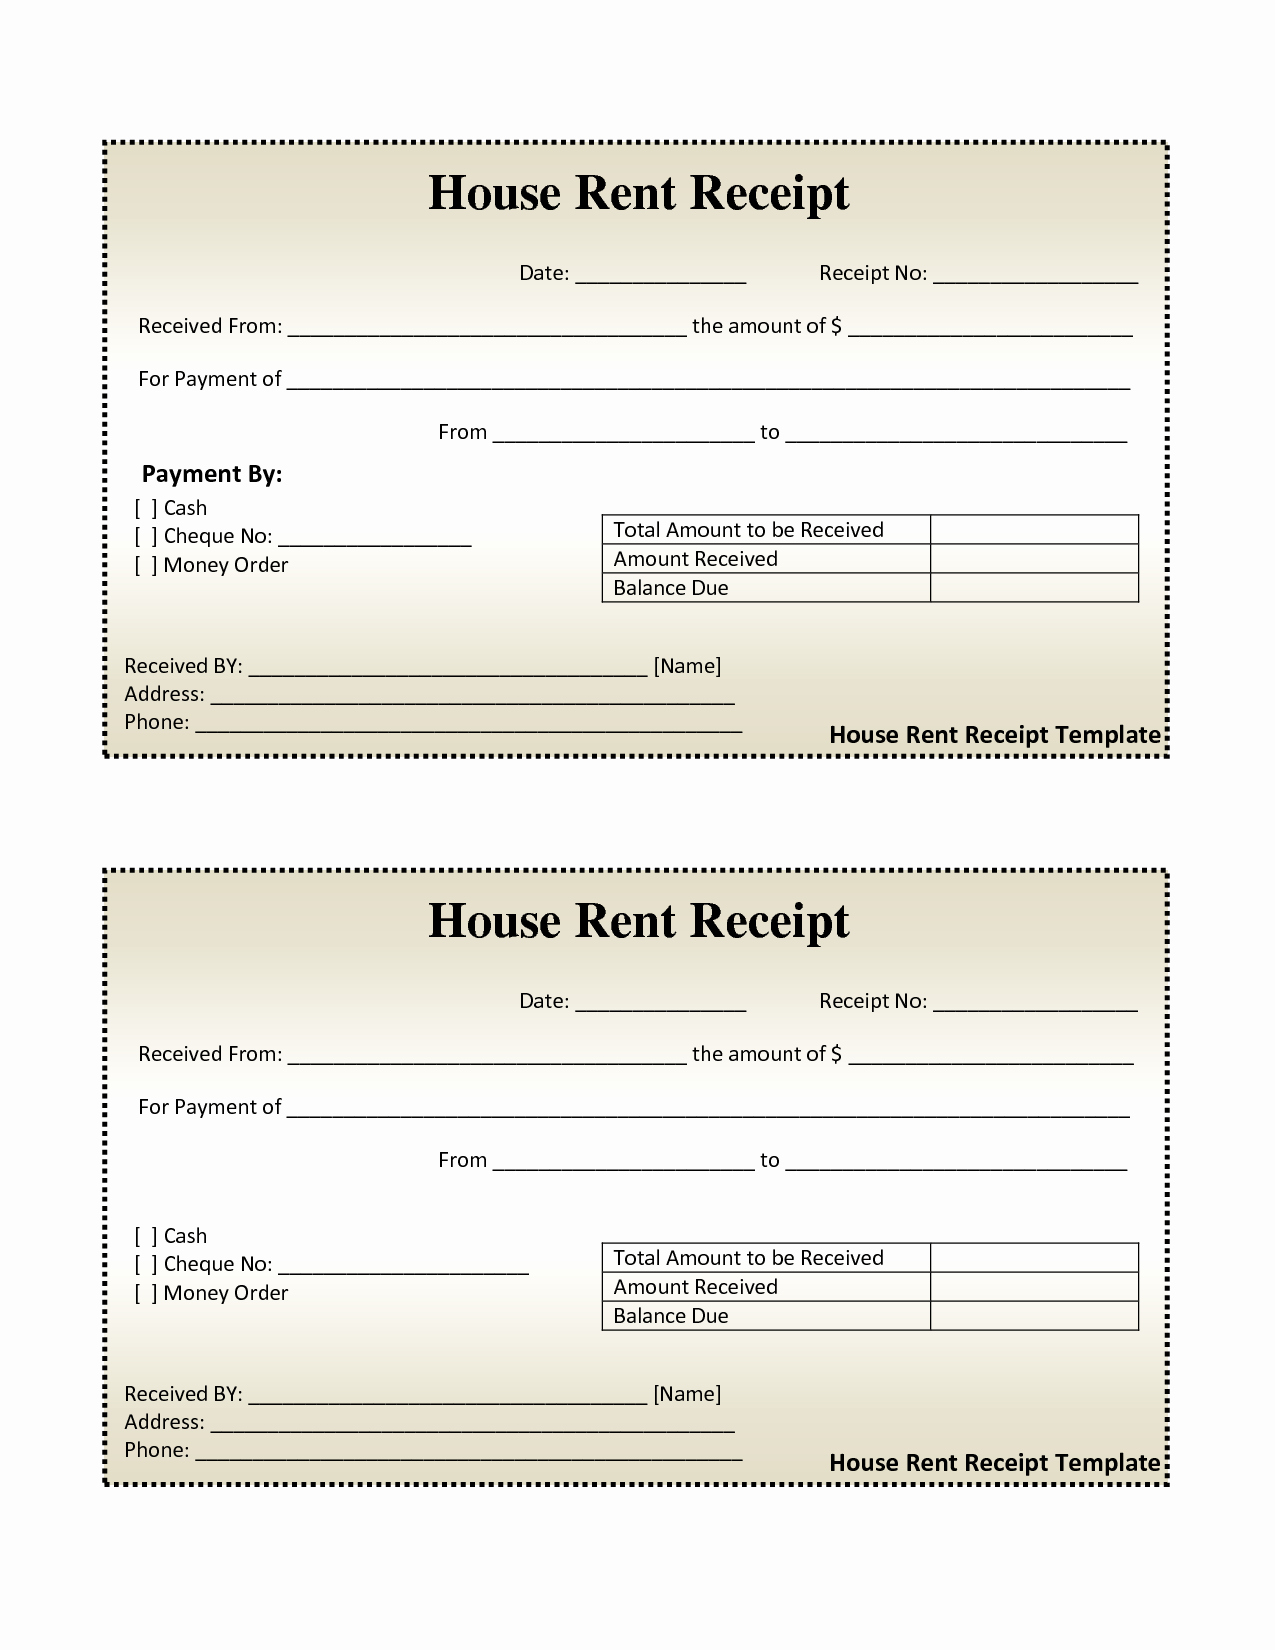 Free Rental Receipt Template Inspirational Free House Rental Invoice